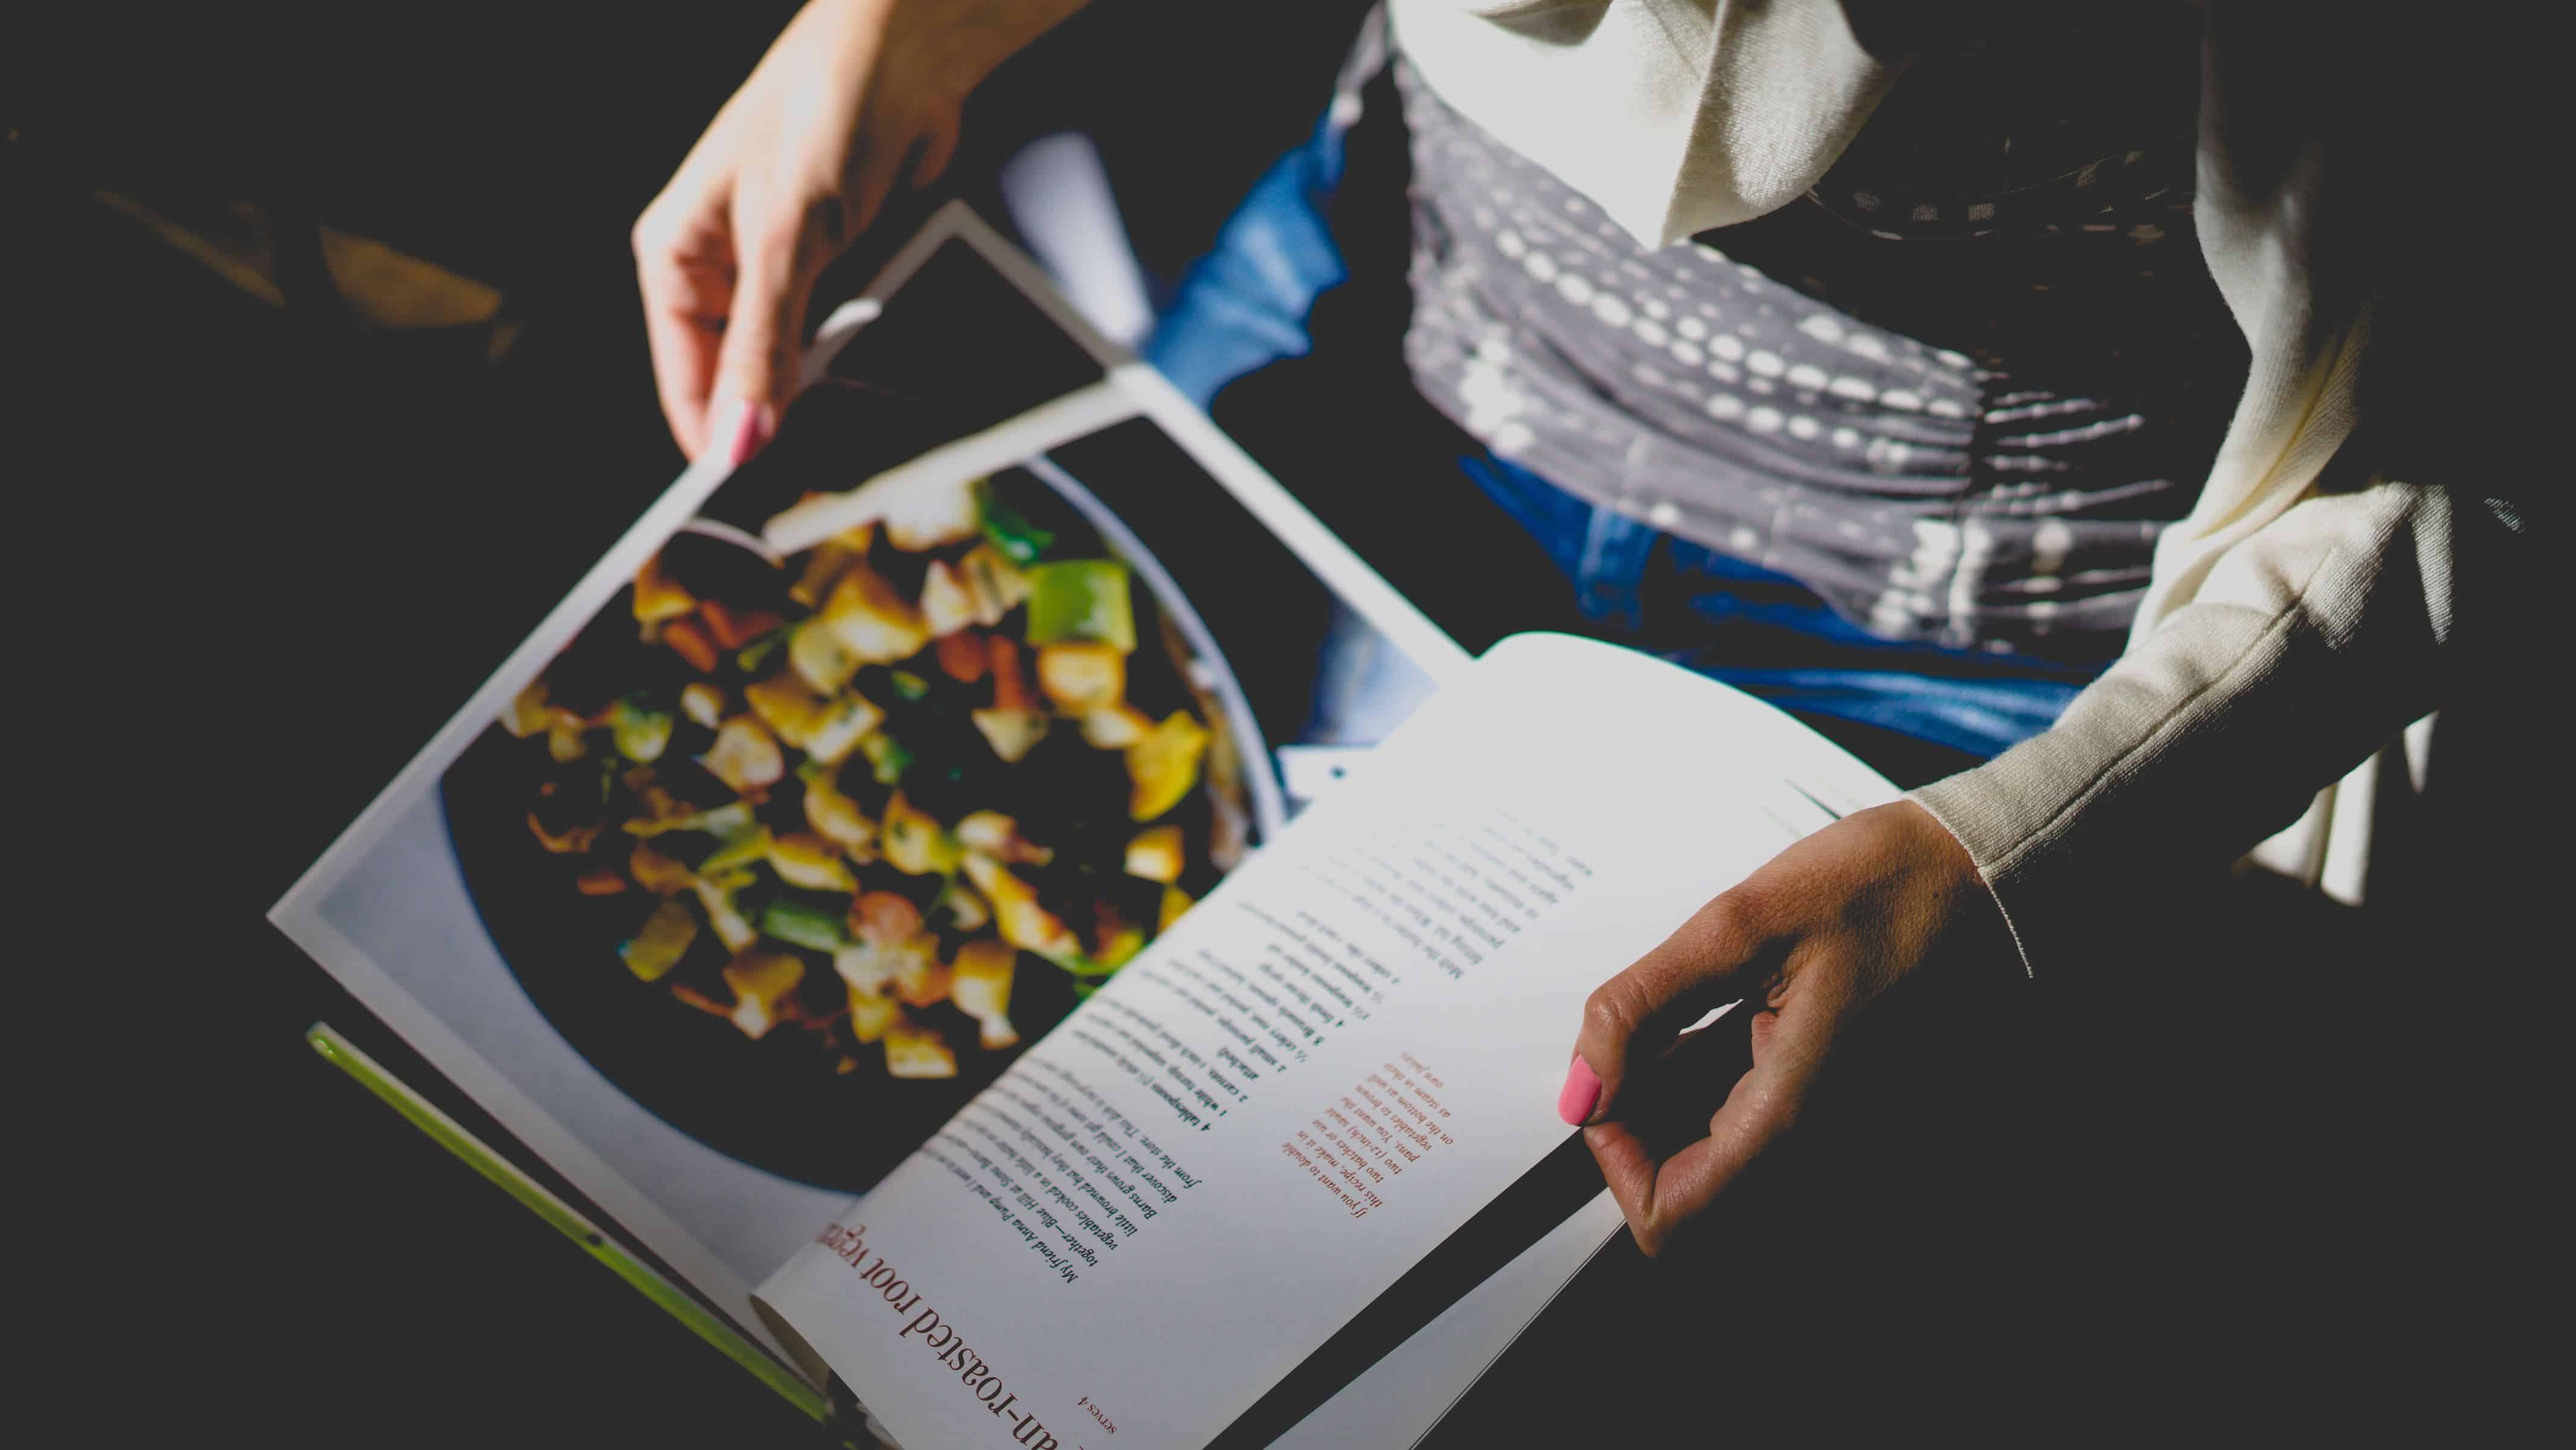 a person is reading a cookbook